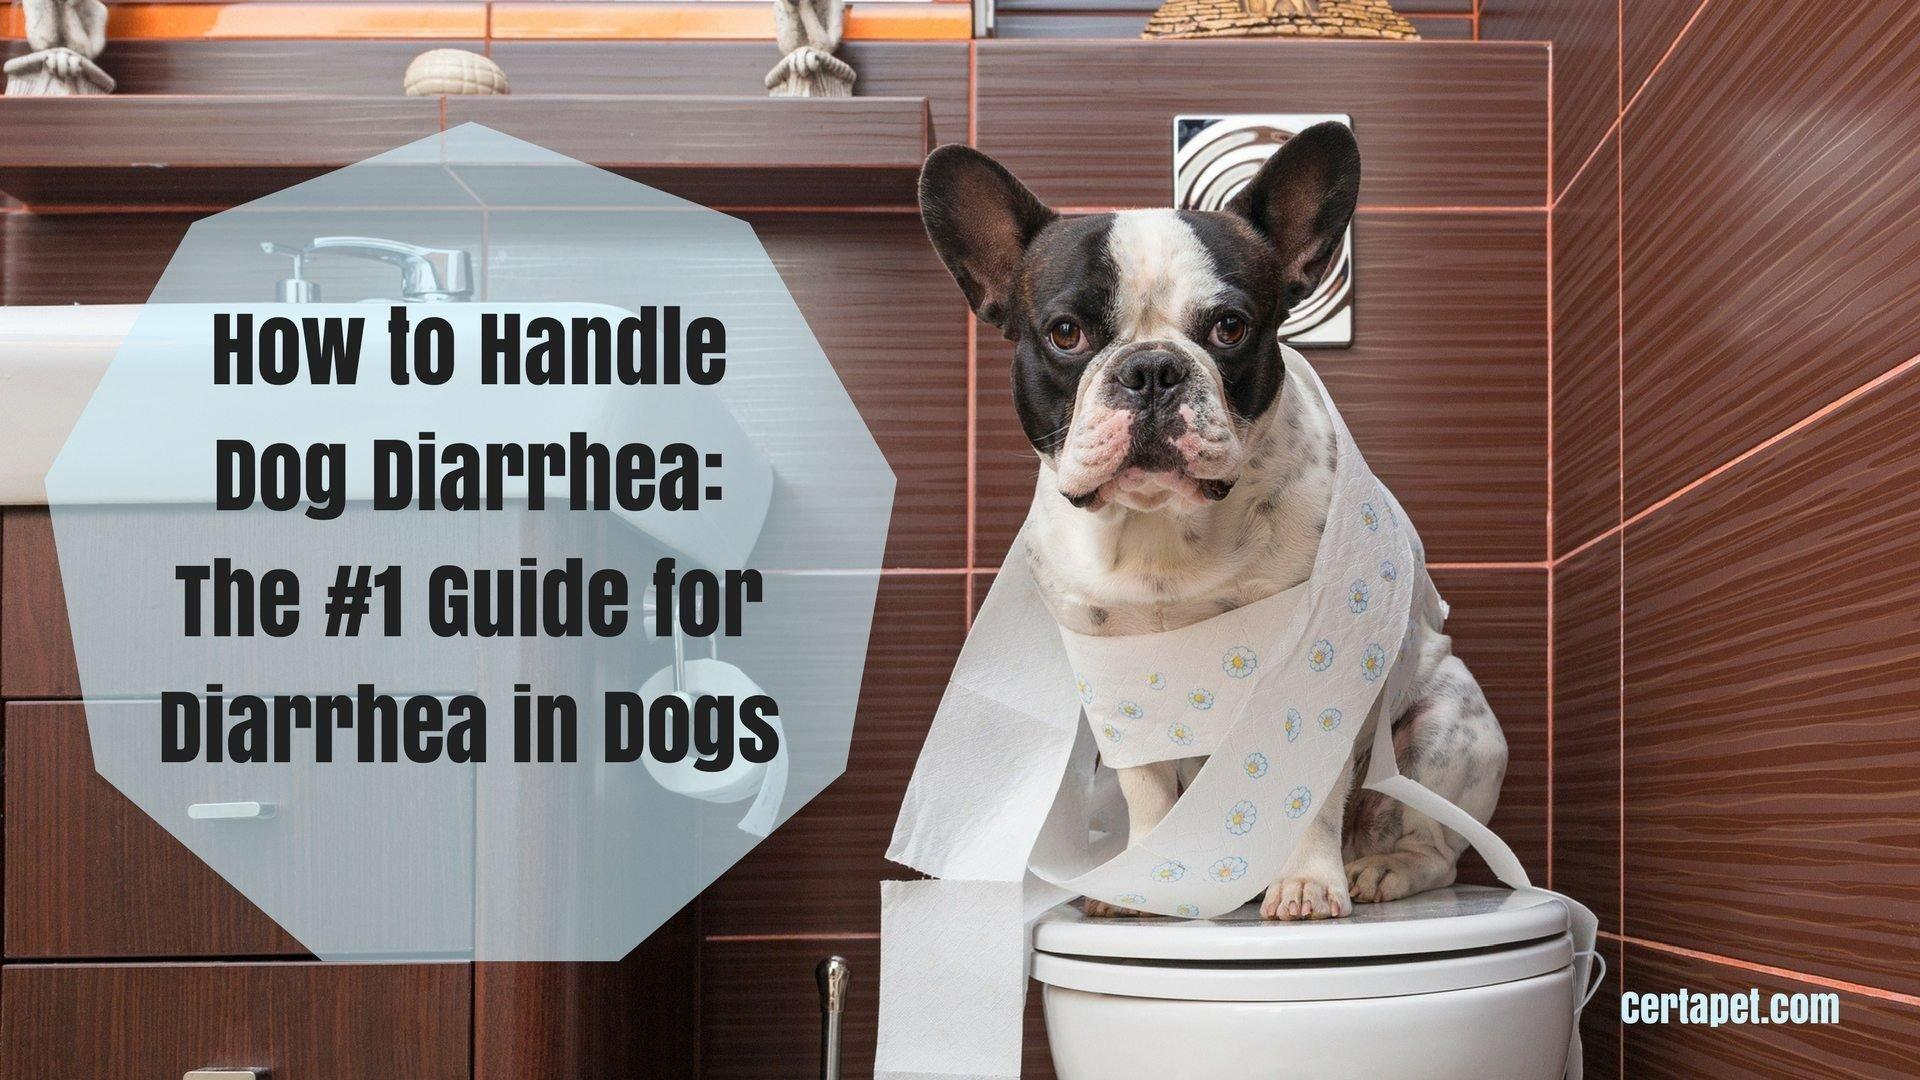 How To Handle Dog Diarrhea: The #1 Guide For Diarrhea In Dogs